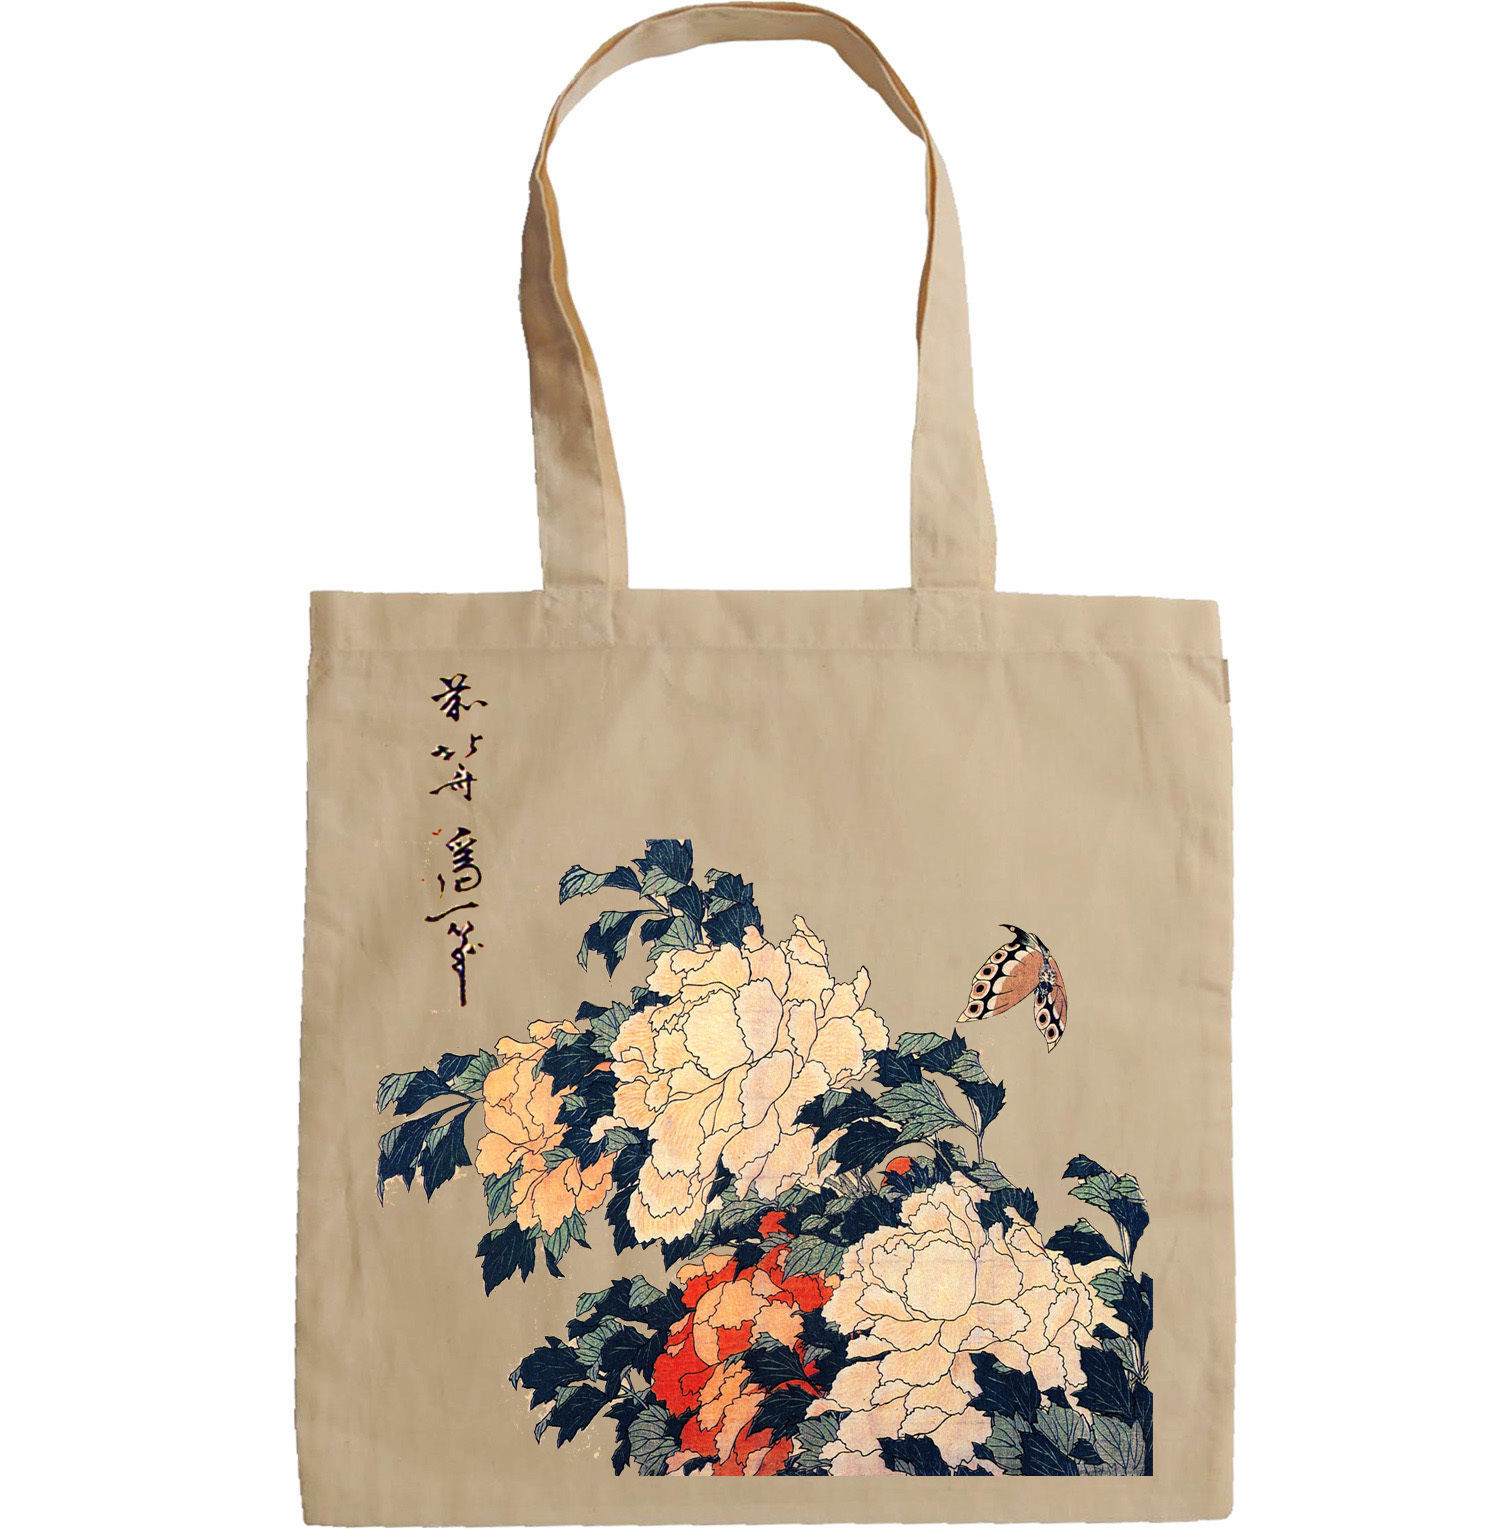 POENIS AND BUTTERFLY HOKUSAI ART - NEW AMAZING GRAPHIC HAND BAG/TOTE BAG